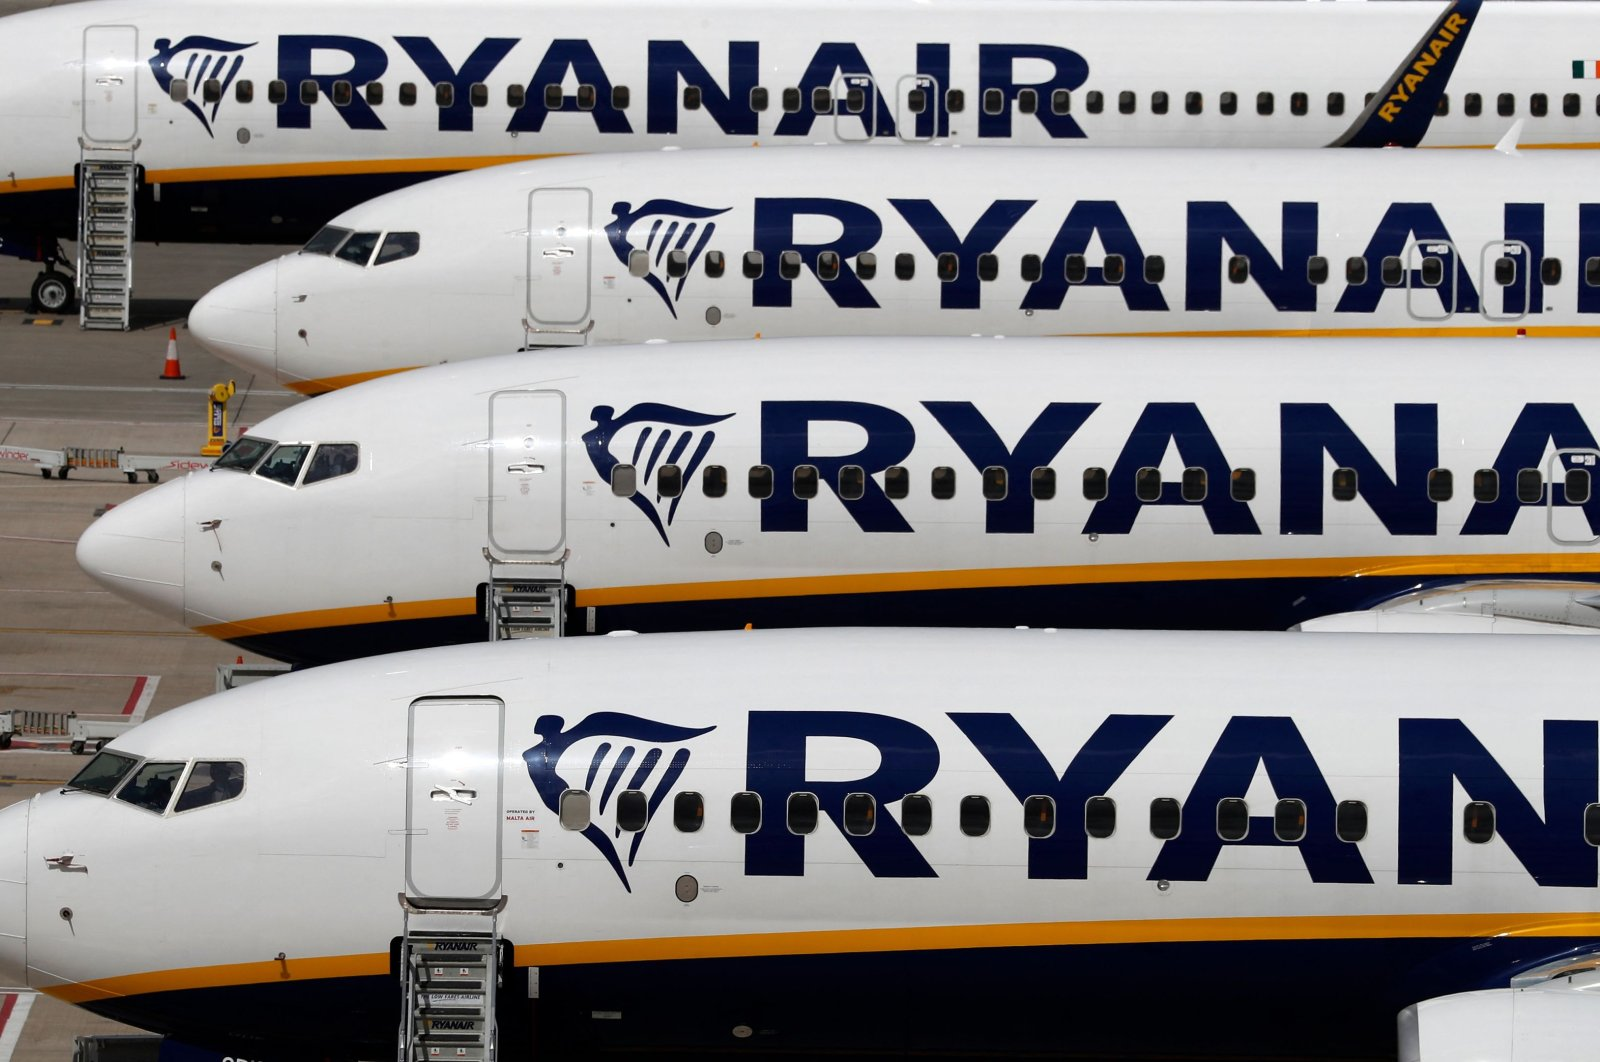 Ryanair aircraft are pictured at Stansted airport, northeast of London, U.K., Aug. 20, 2020. (AFP Photo)